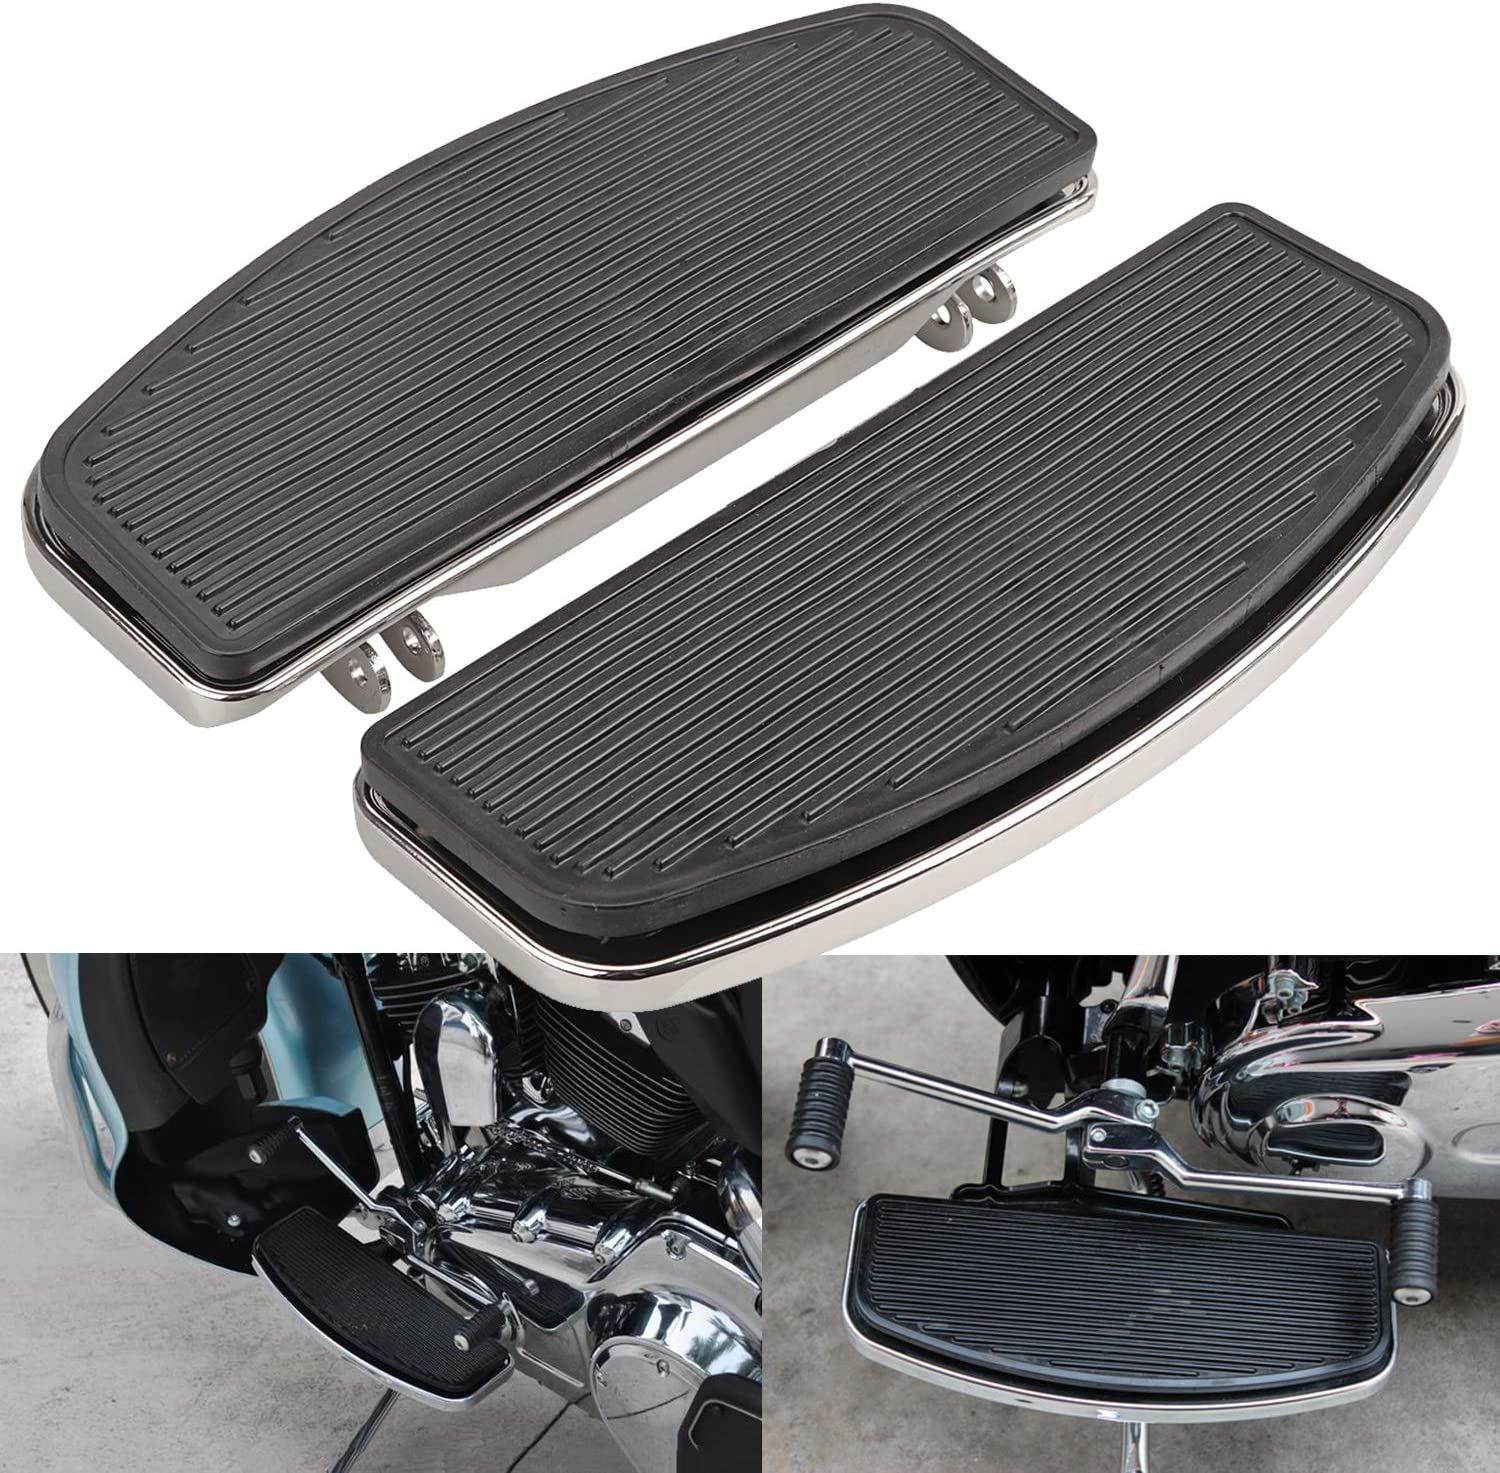 XMMT Chrome Front Driver Insert Fashion pegs Floorboards Ranking TOP3 Foot Rubber Pad